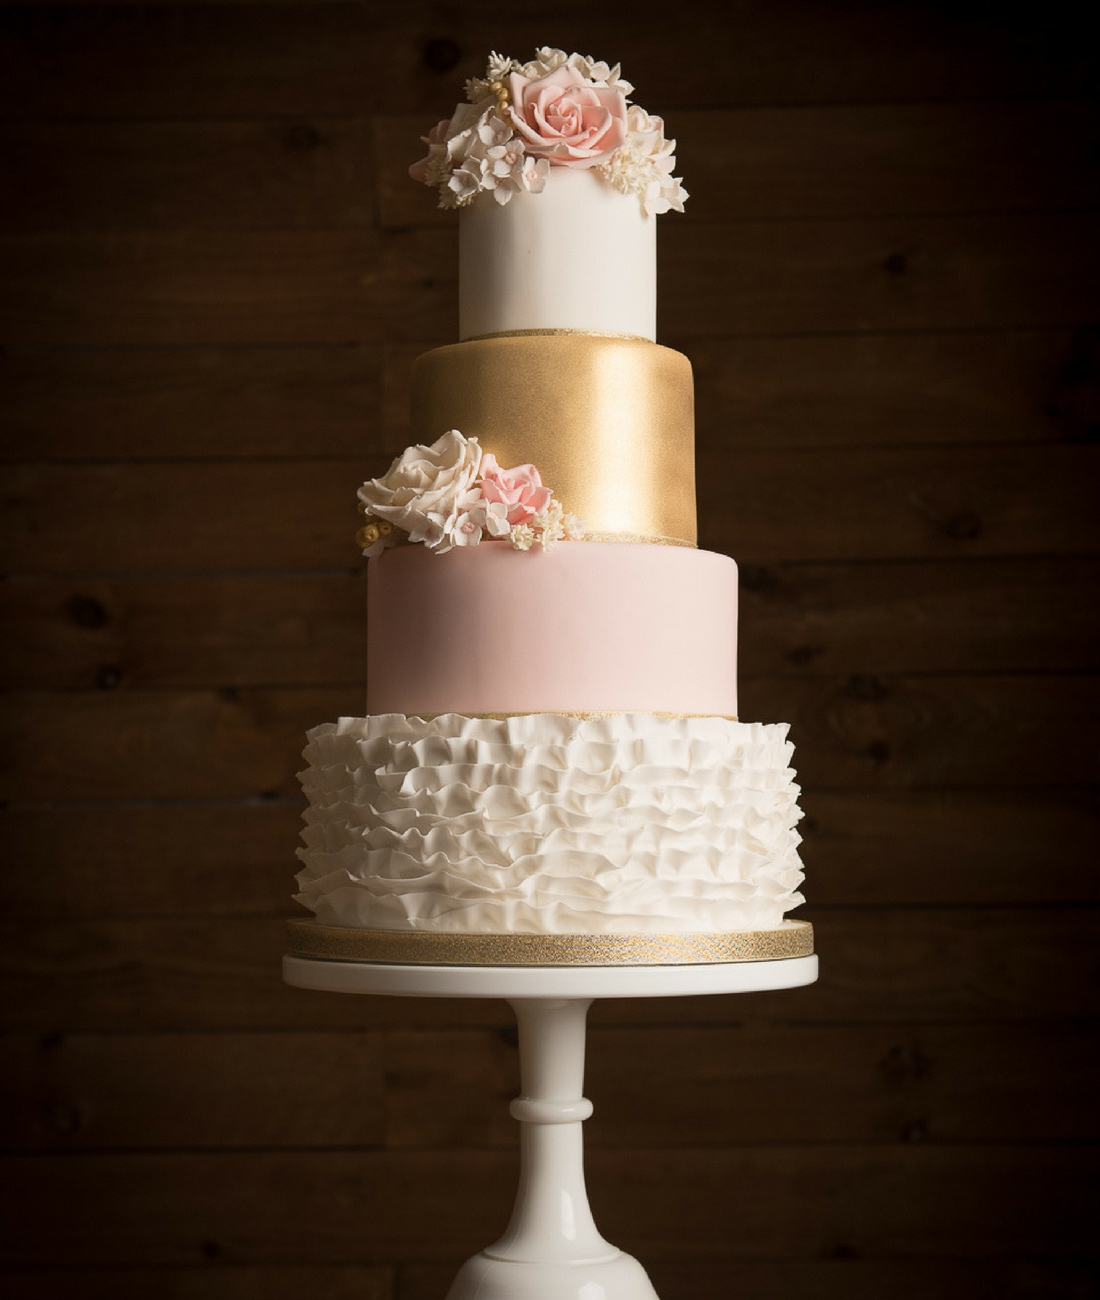 Love Artisan Wedding Cakes - Ruffles Gold Pink Wedding Cake